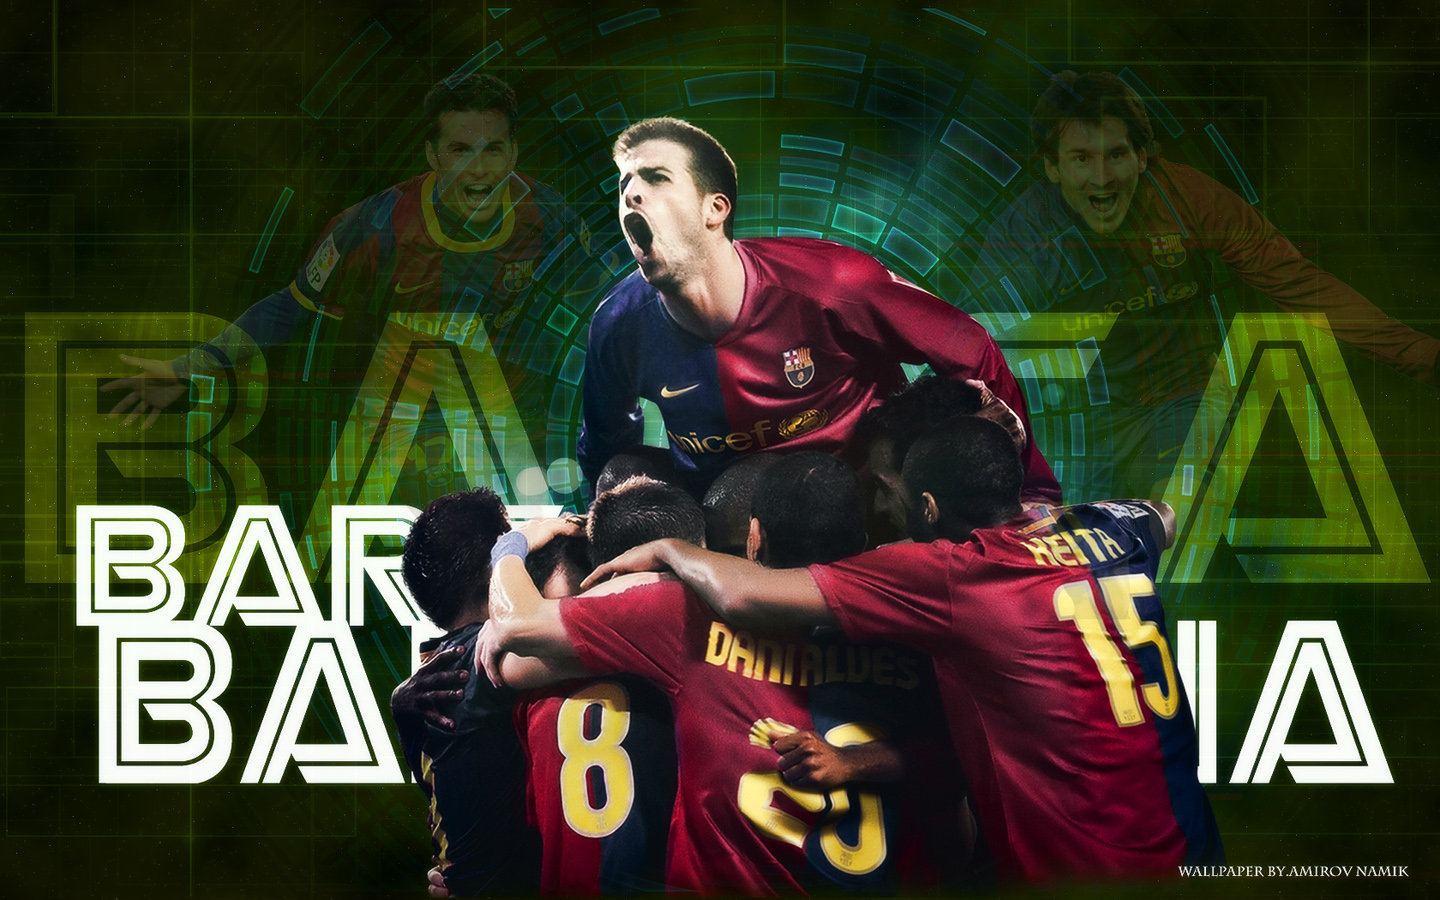 http://2.bp.blogspot.com/-90sWER0khDg/US-Ip2a-OQI/AAAAAAAAfHY/4ILNERQiArs/s1600/Barcelona-Players-Celebrating-2010-11-fc-barcelona-22614508-1440-900.jpg